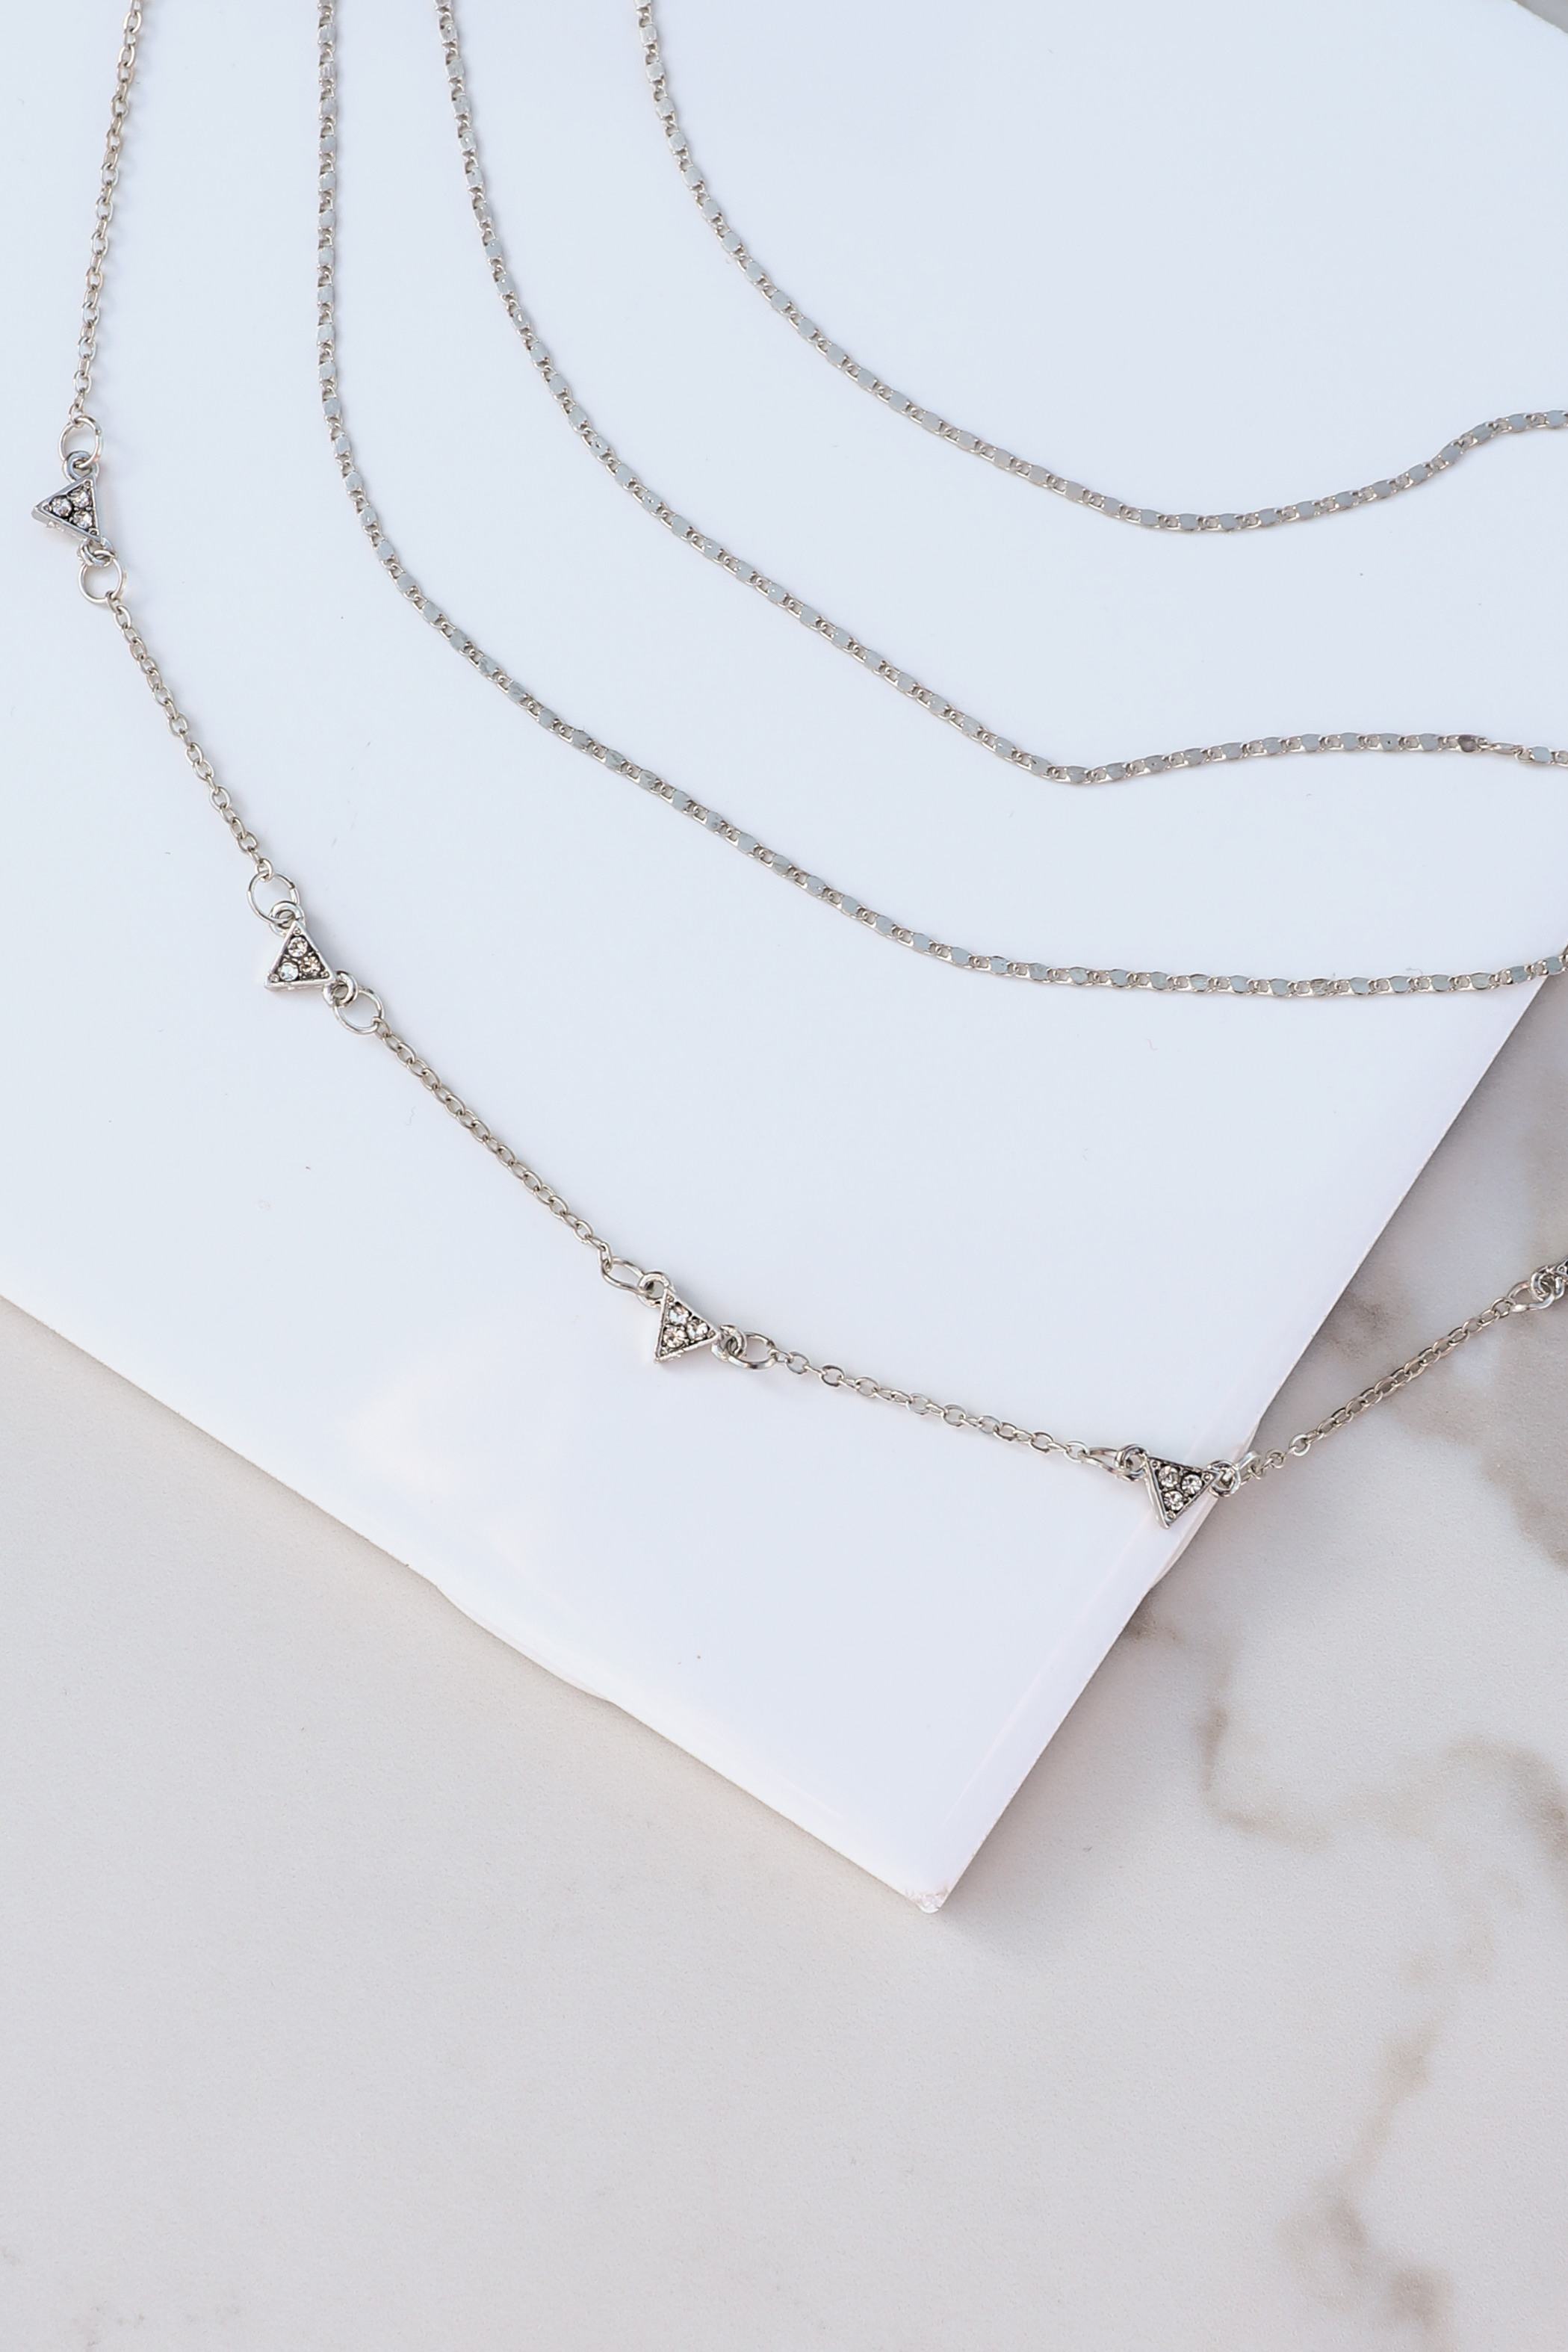 Silver Layered Textured Chain Necklace with Triangle Details